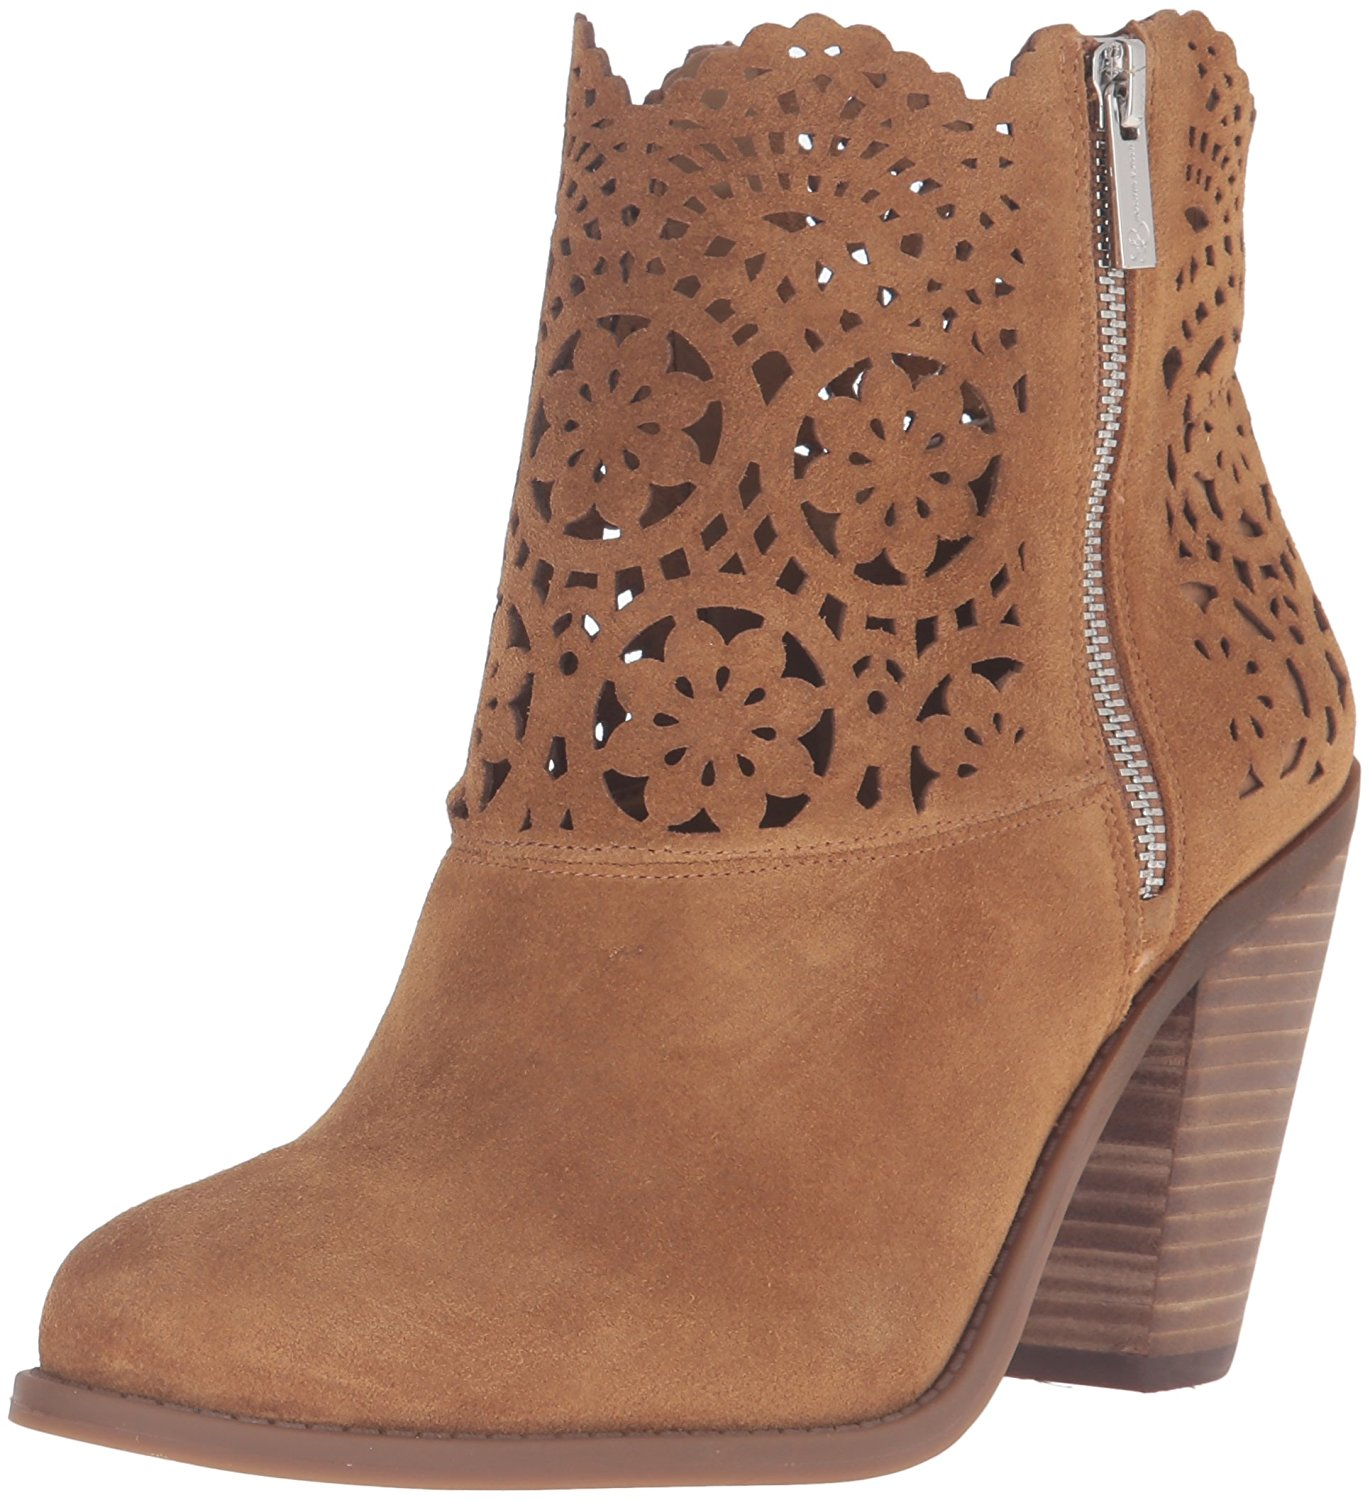 Jessica Simpson New Sesley Honey Brown Suede 6.5 Zapatos para mujer vhdpKsEjrO